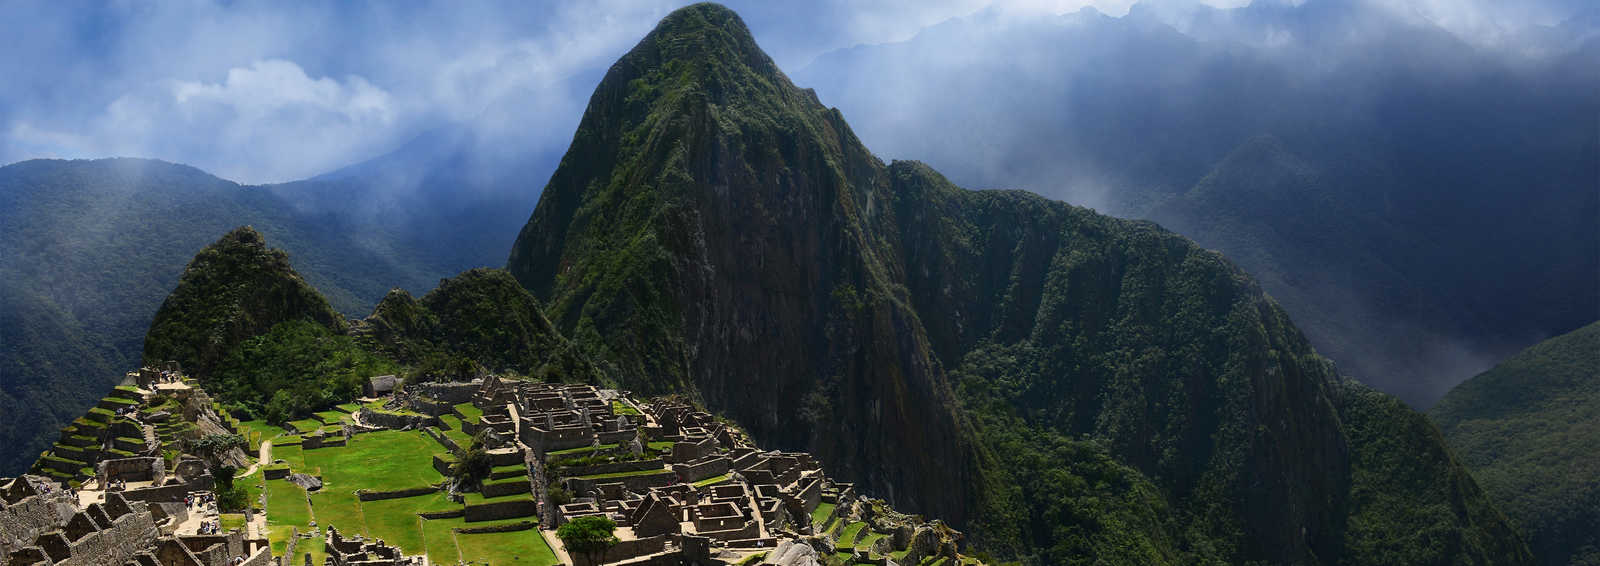 Dramatic sky over Machu Picchu